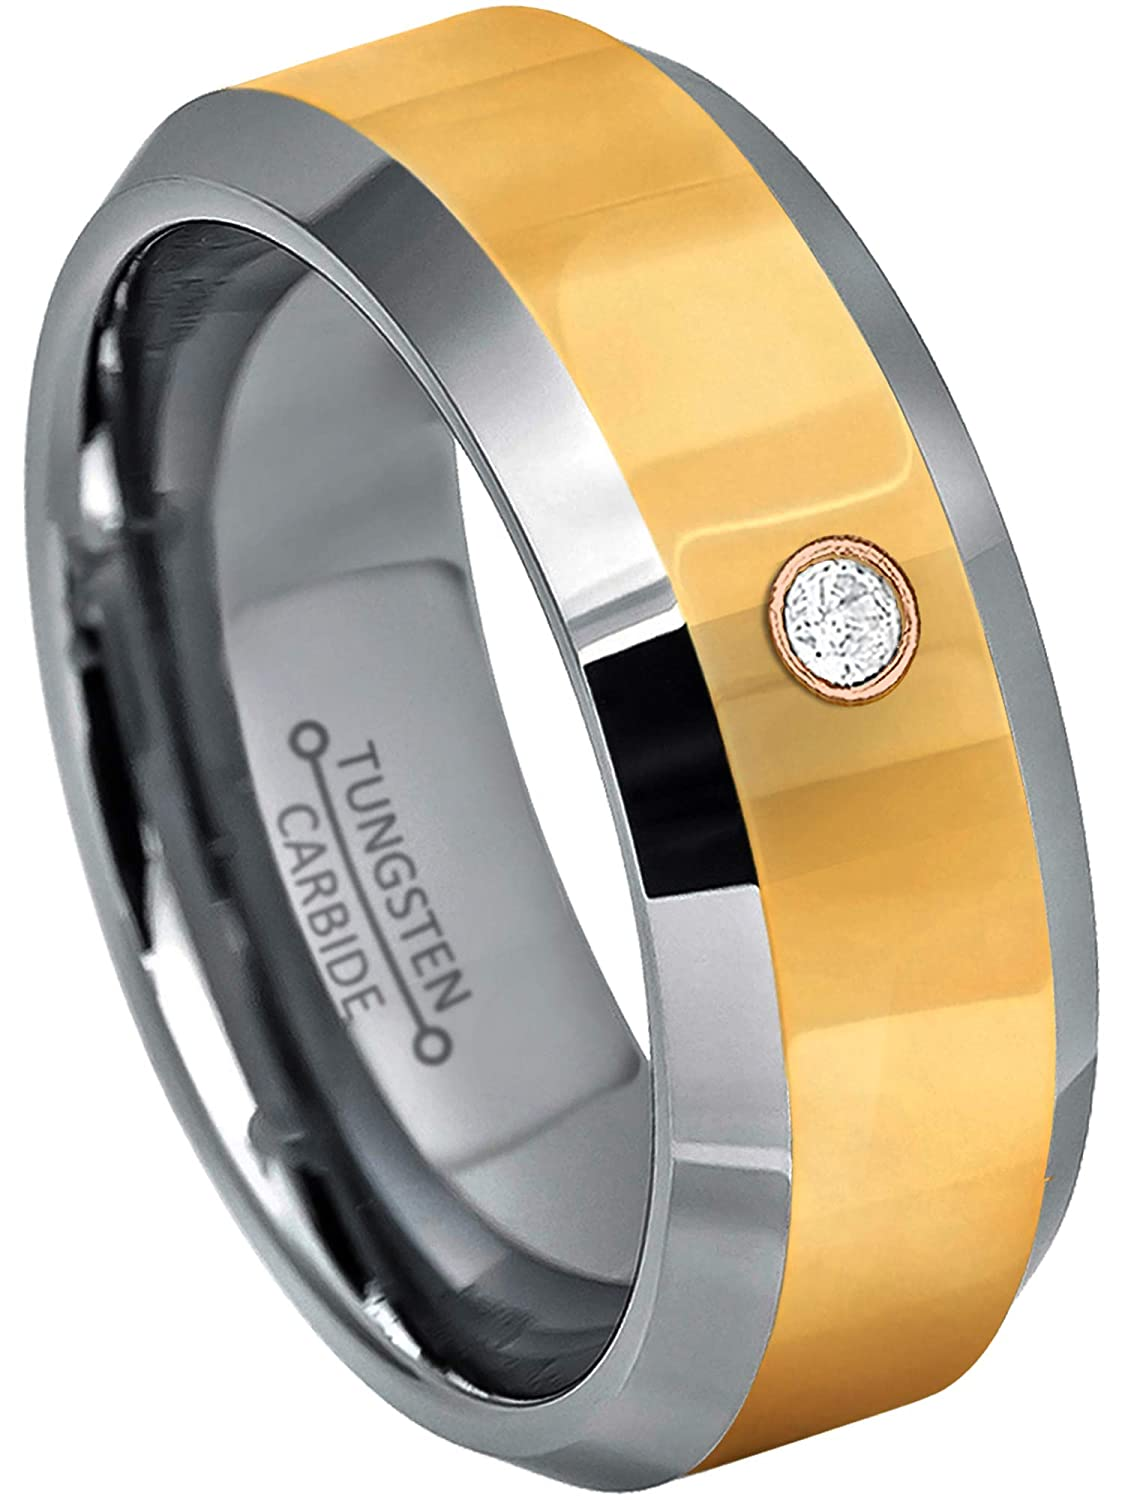 8MM Polished 2-Tone Yellow Gold Plated Comfort Fit Beveled Edge Tungsten Carbide Wedding Band Jewelry Avalanche 0.07ct Diamond Tungsten Ring April Birthstone Ring